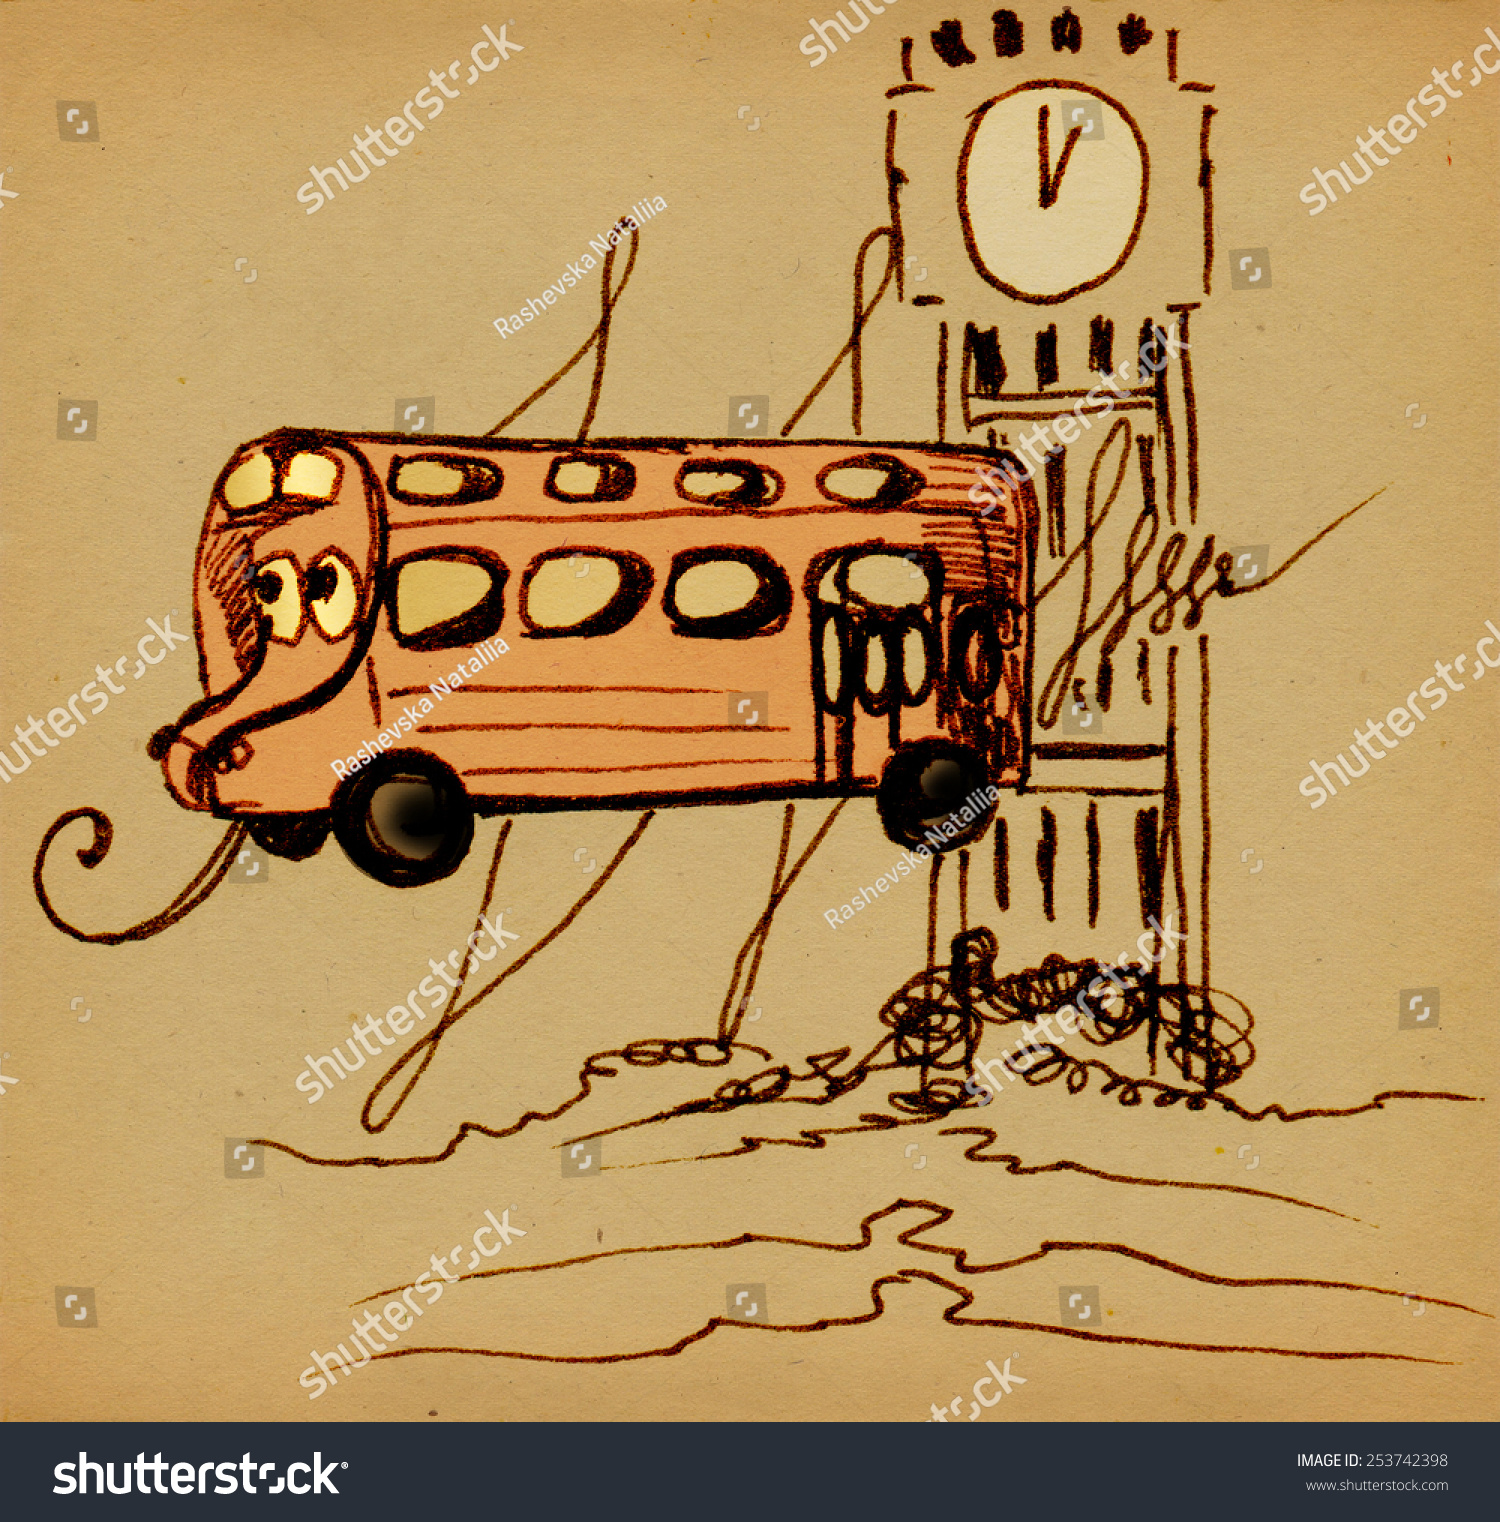 Funny bus eyes on background big stock illustration 253742398